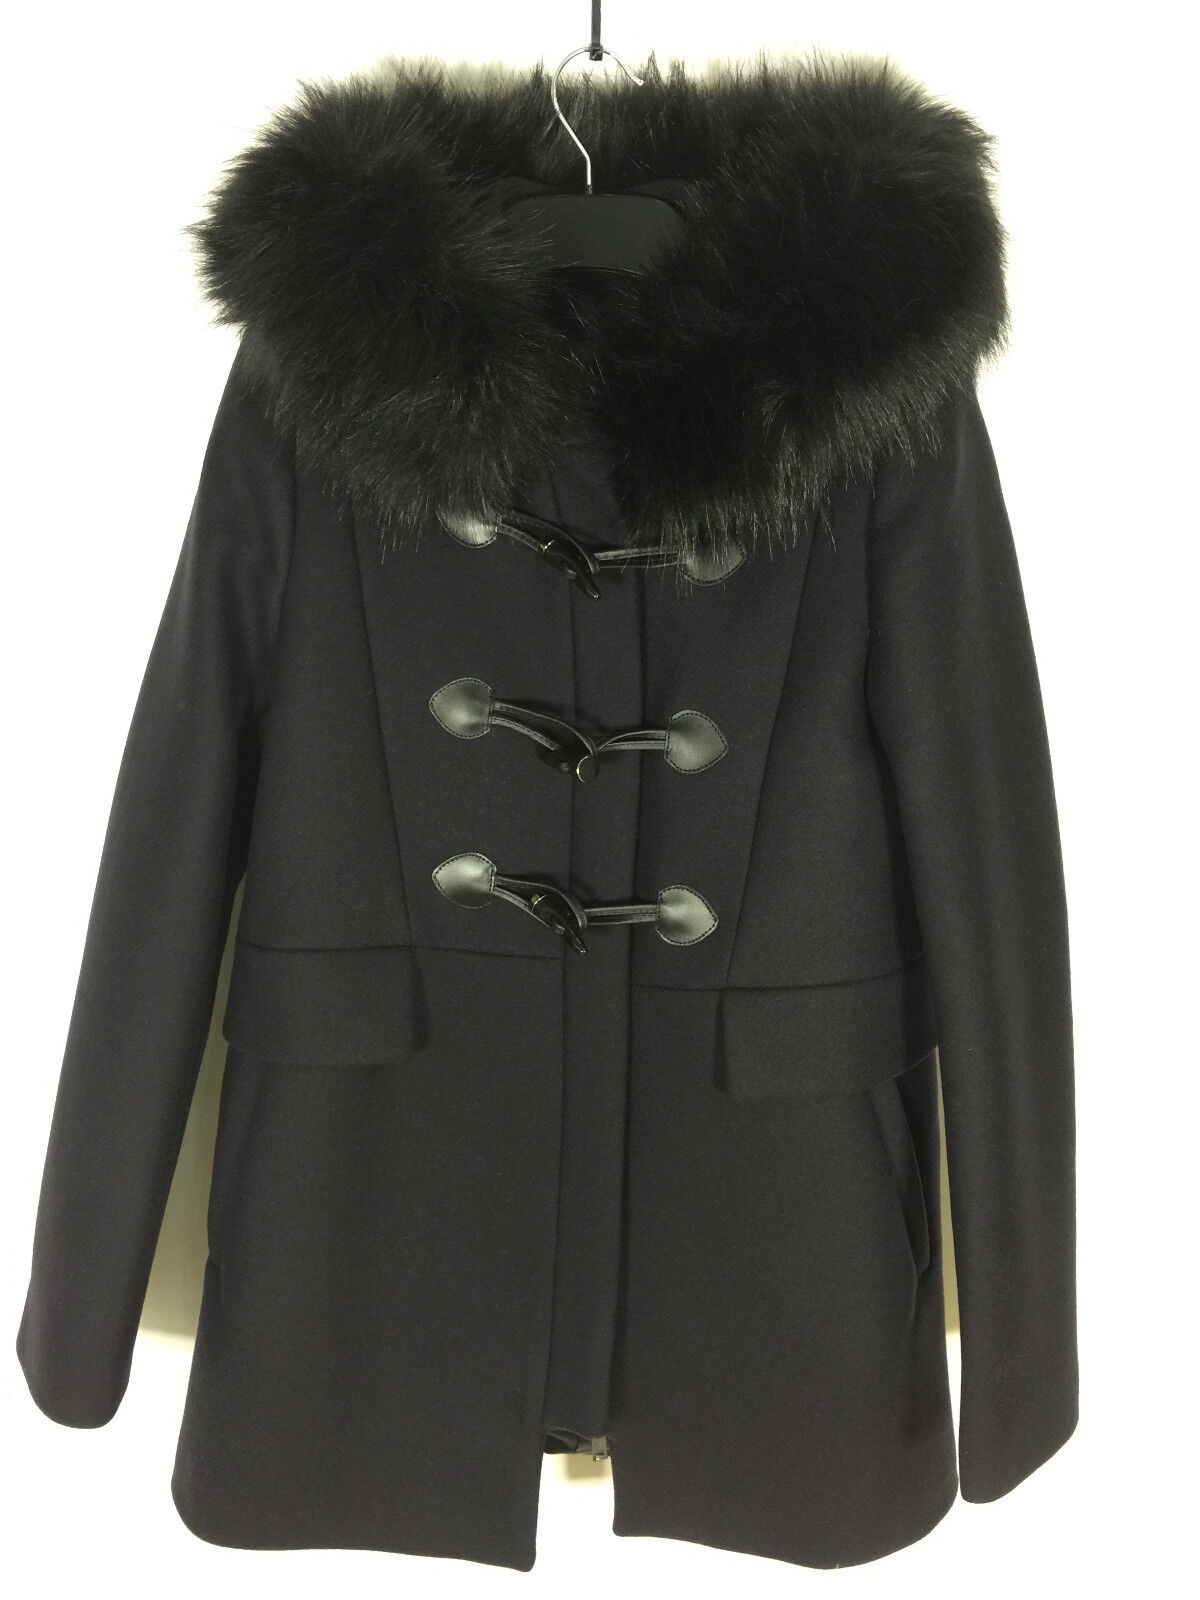 Zara Navy Blue Duffle Coat With Faux Fur Collar Size Small Ref ...